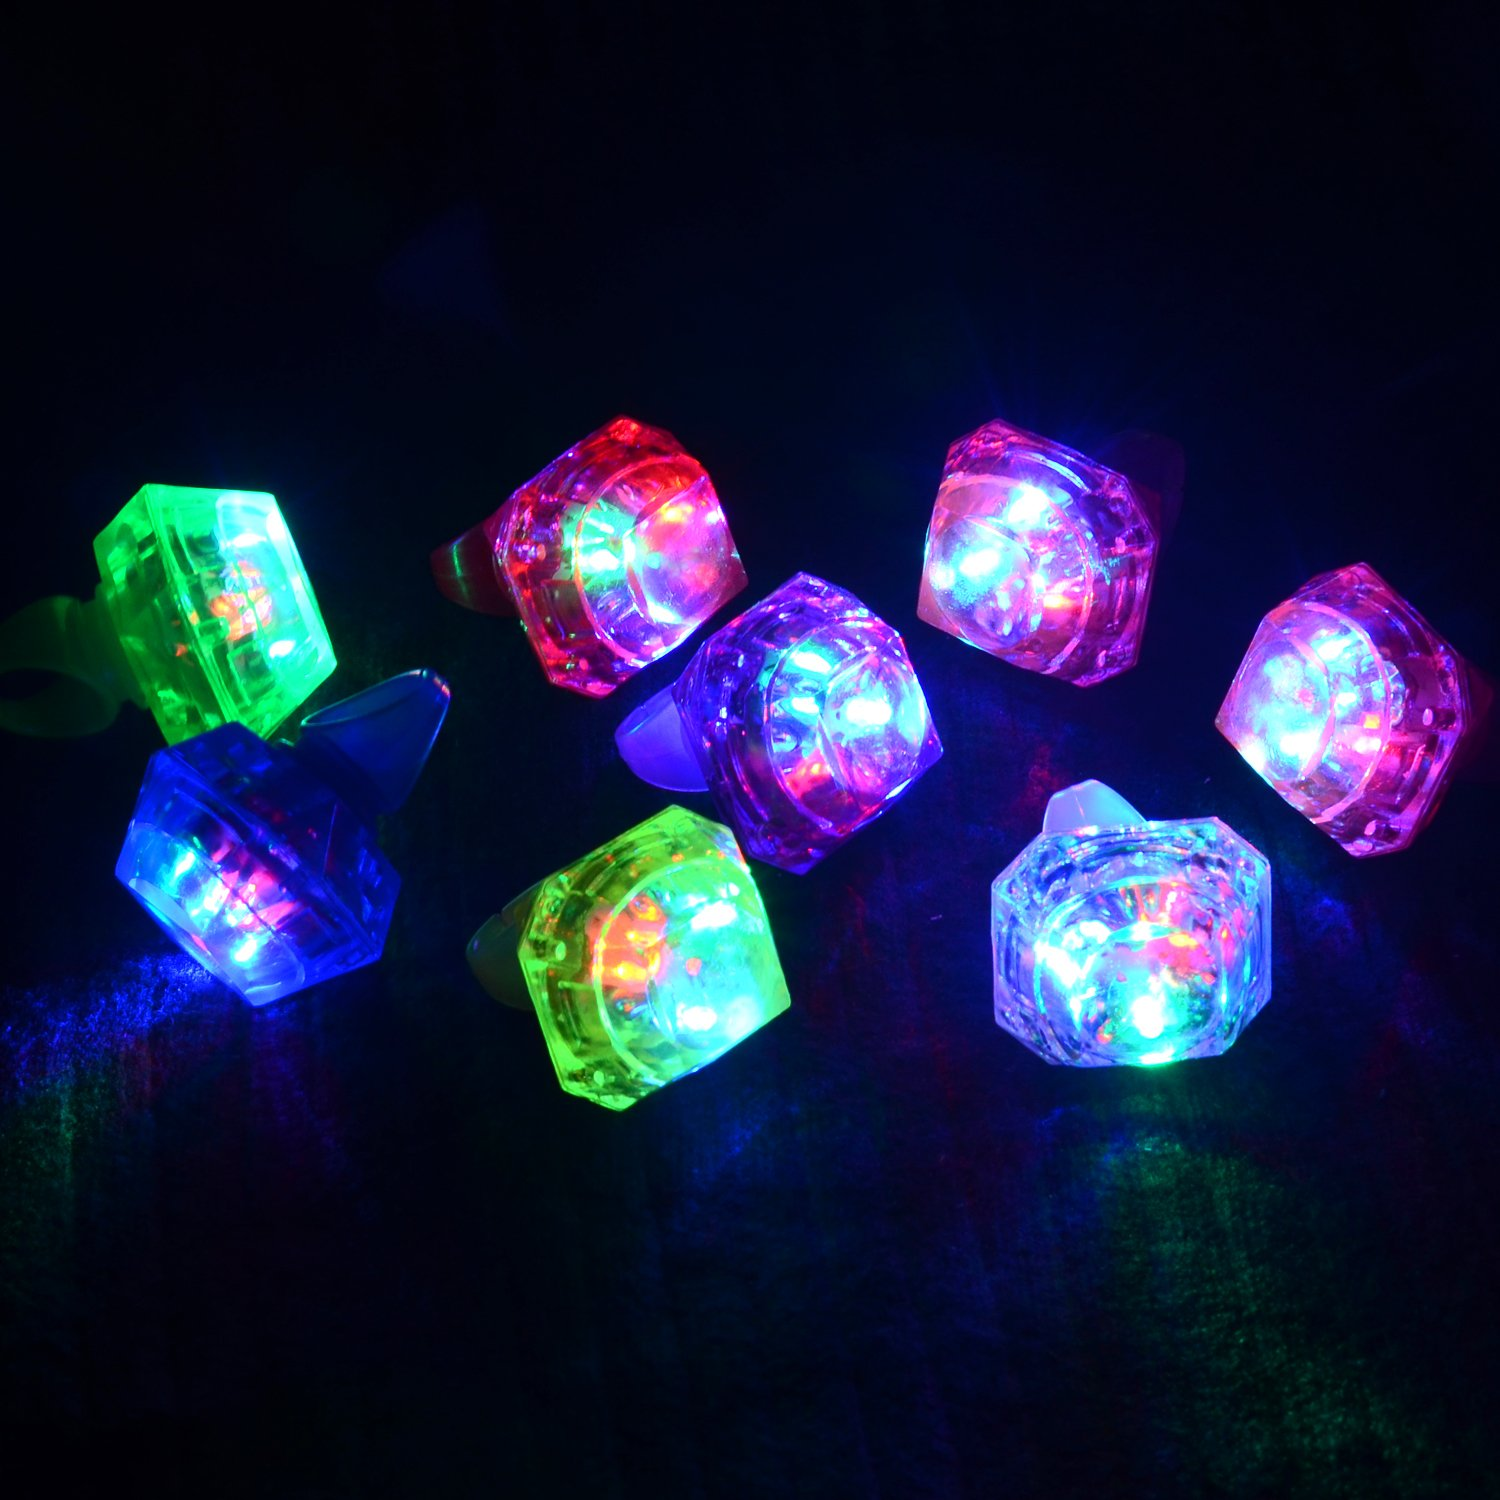 LED Rings with 7 Colors 24 Pack Light up Kids Finger Toys Flashing Bumpy Jelly Big Ring for Glow Party Favors Supplies